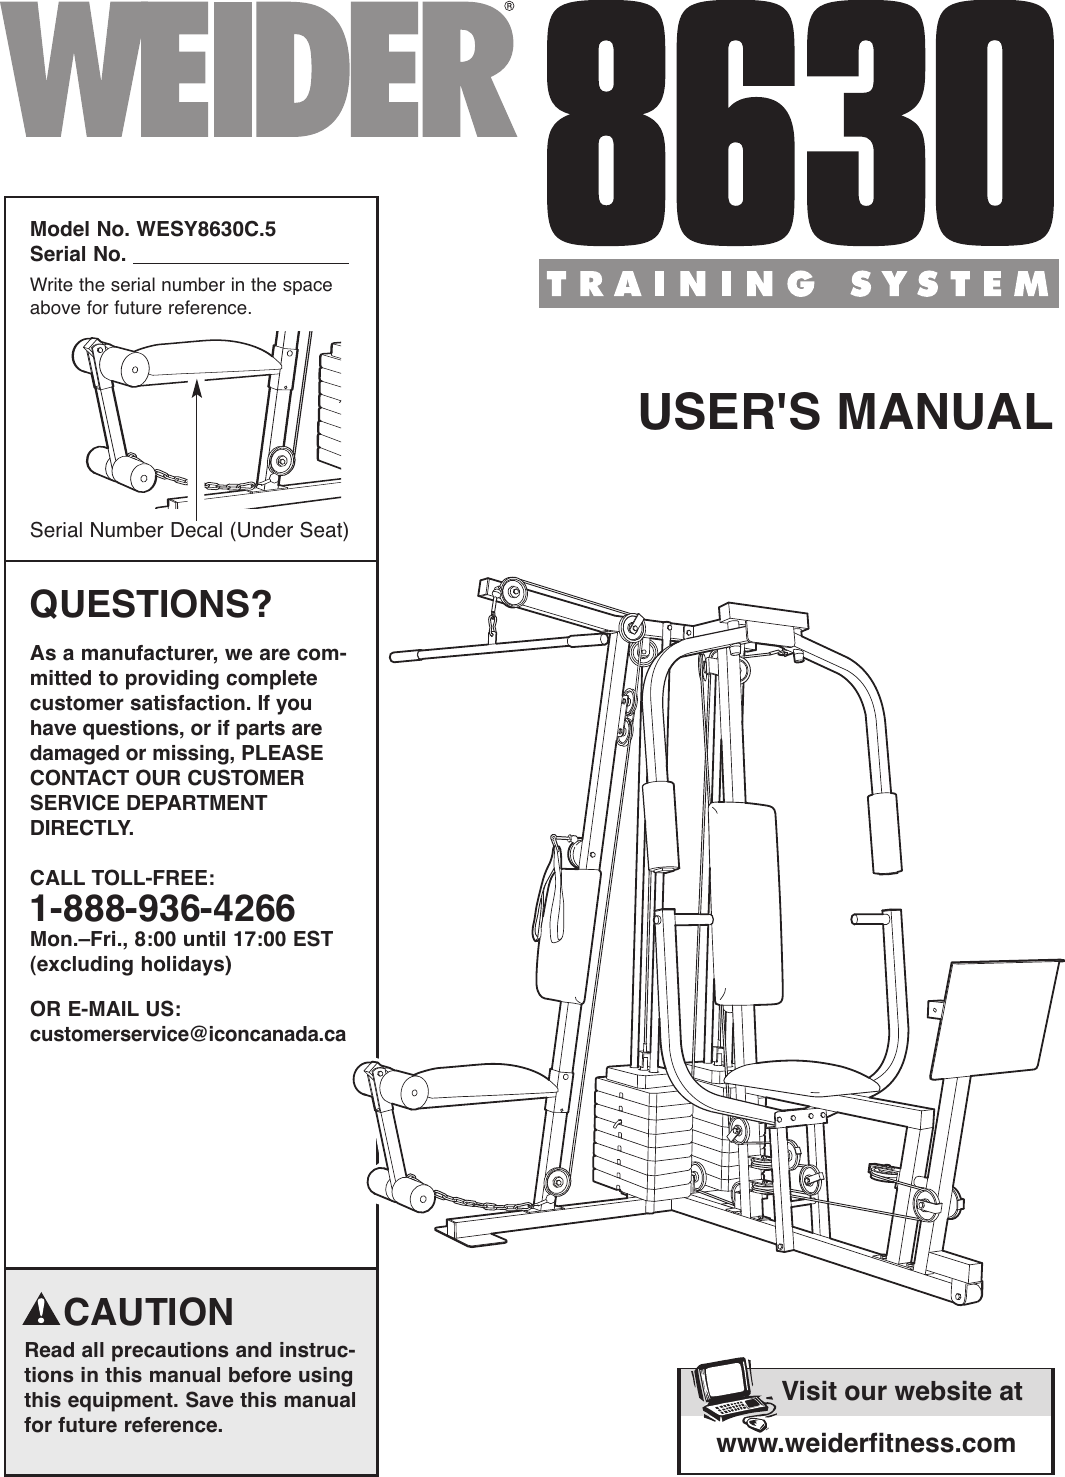 Weider 8630 Training System Wesy8630C Users Manual